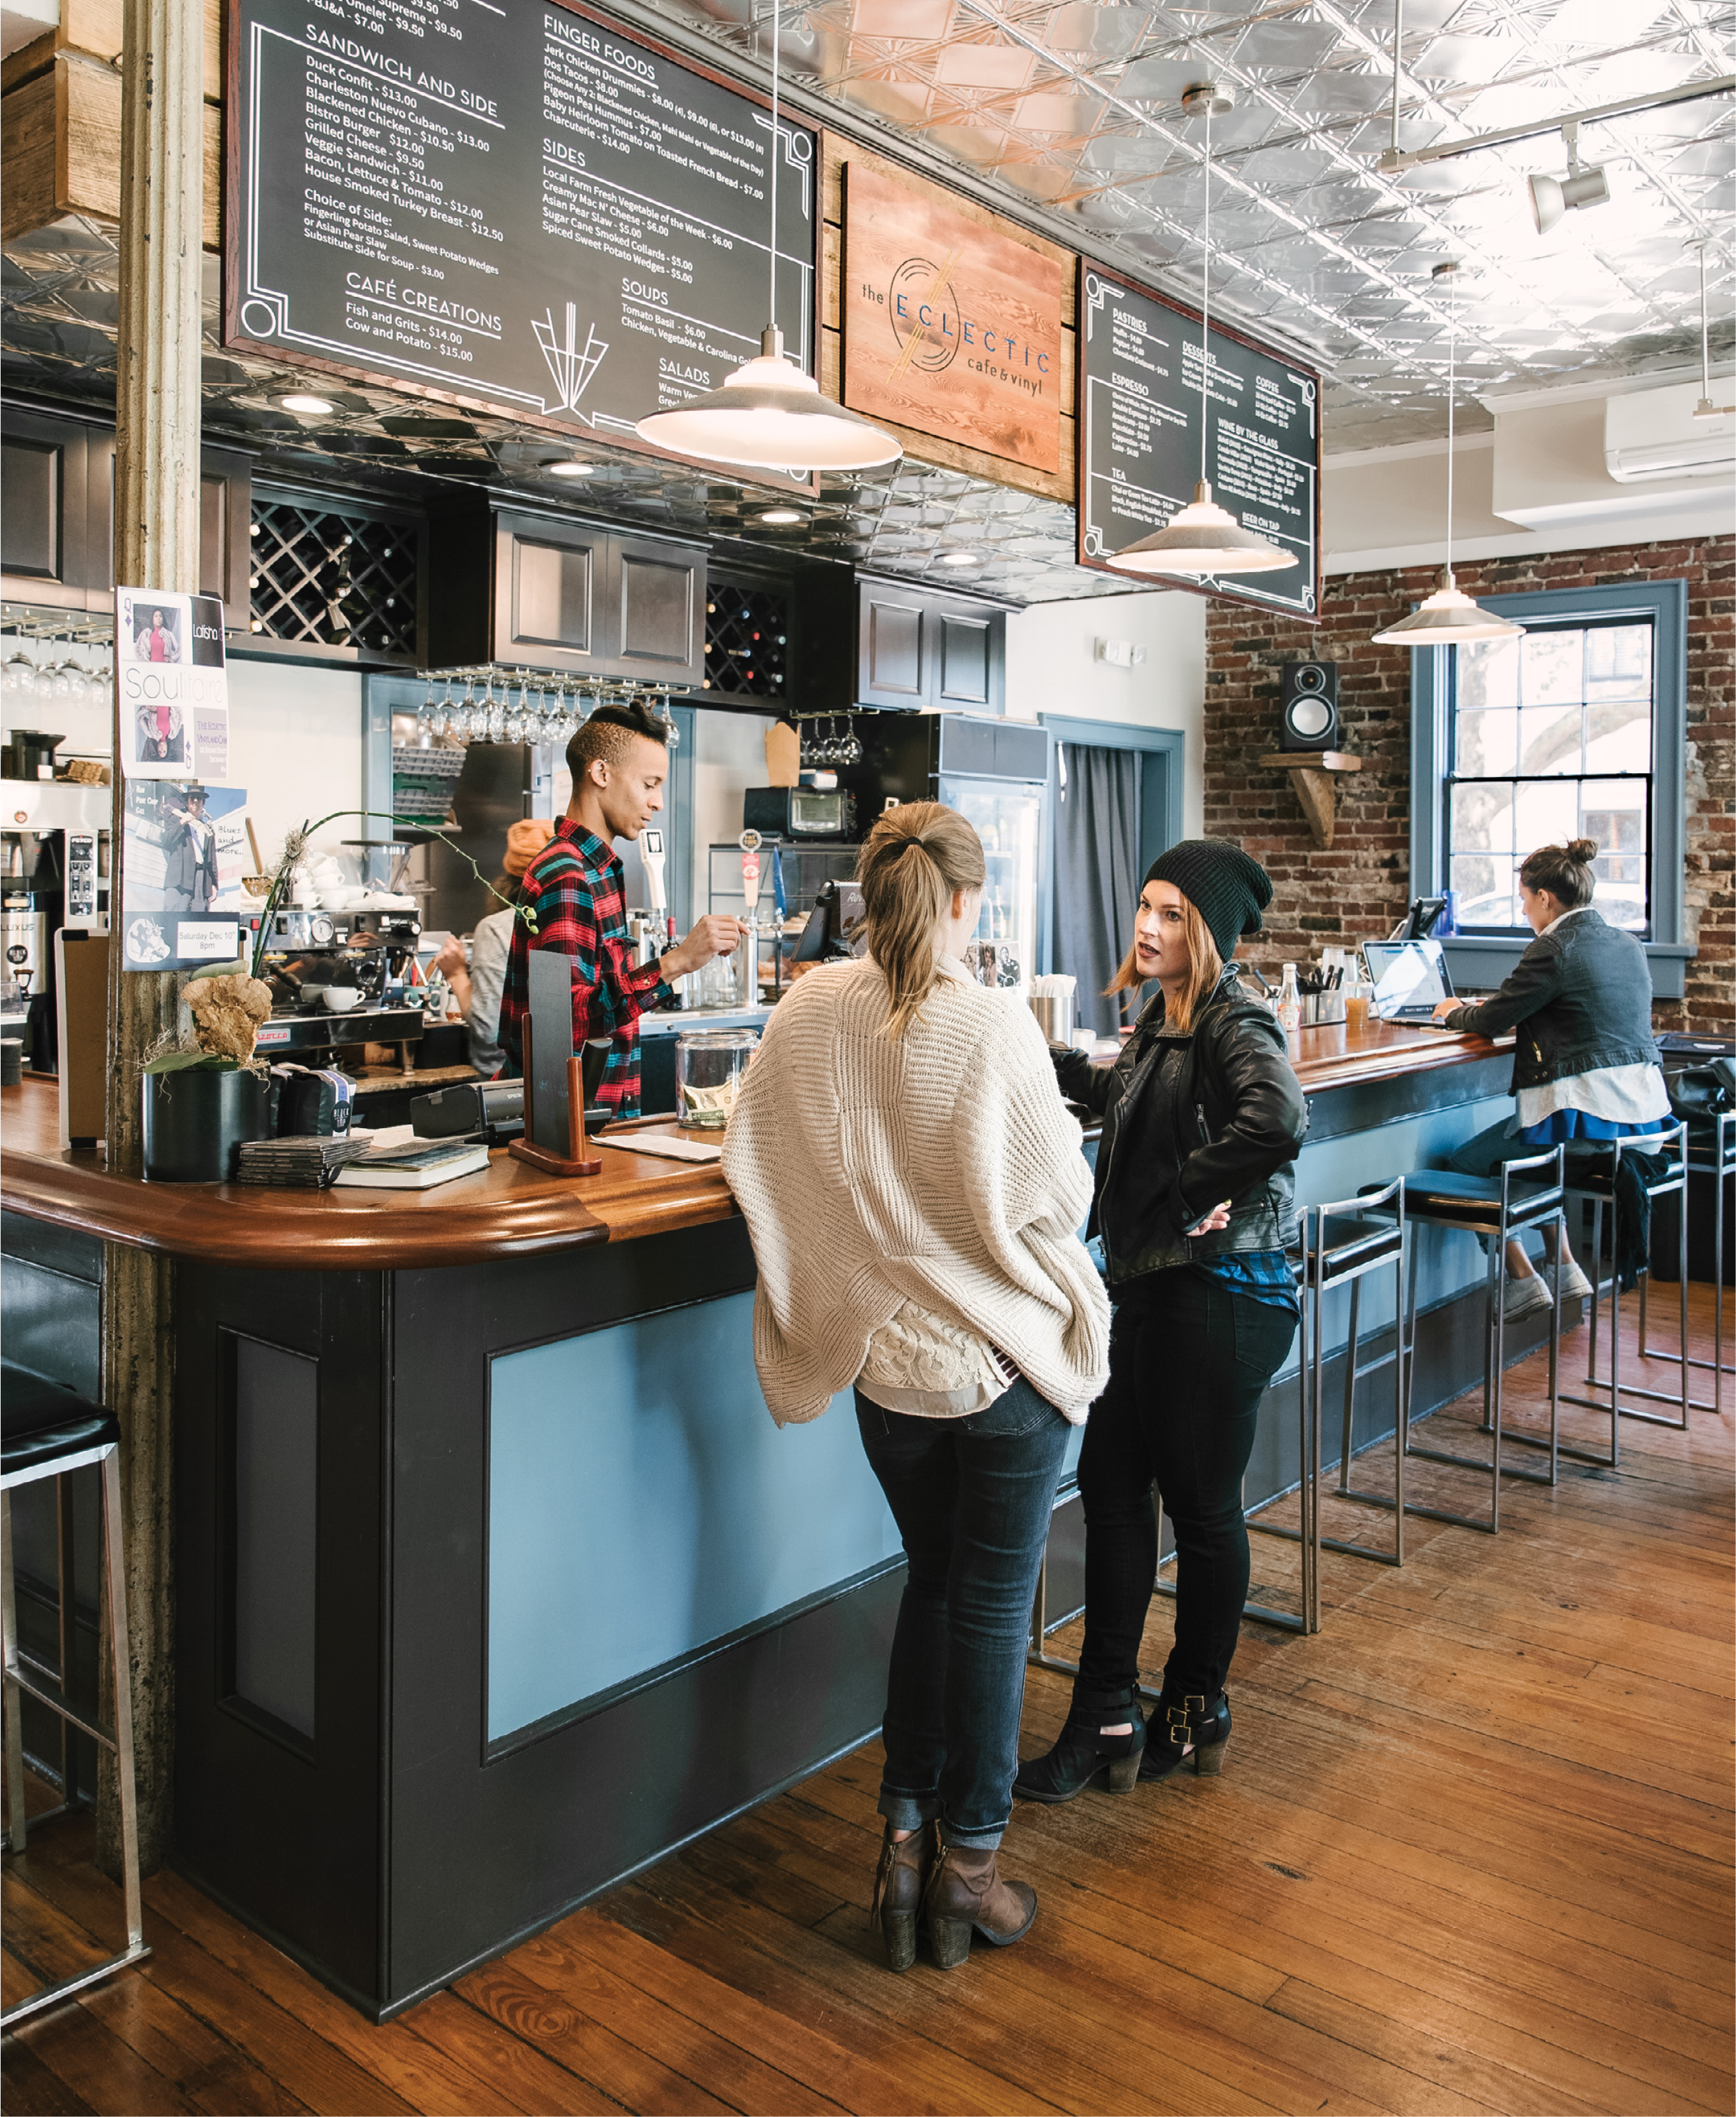 Culture Club: In downtown's Cannonborough/Elliotborough hood, The Eclectic Café & Vinyl pulls in a unique assemblage of music buffs and millennials who appreciate solid brews and good tunes.